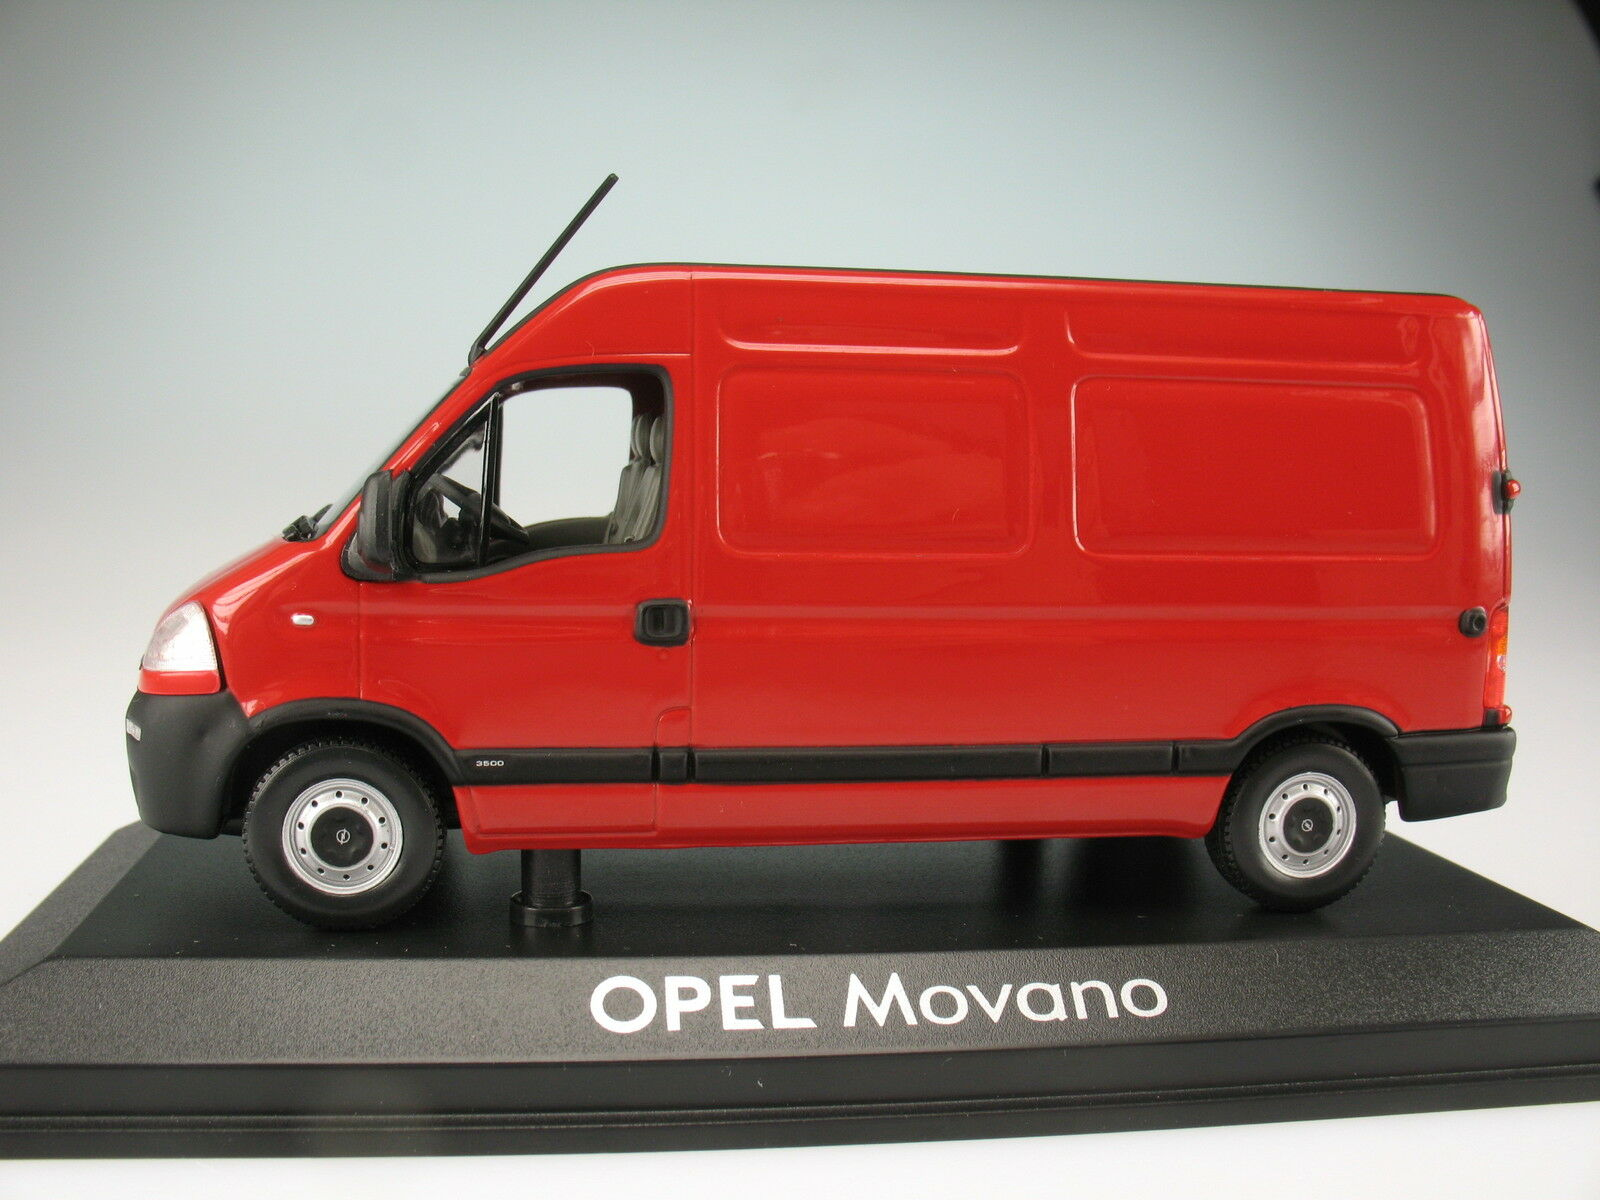 norev opel movano rot 1 43 neu in ovp modellauto transporter eur 19 90 picclick de. Black Bedroom Furniture Sets. Home Design Ideas